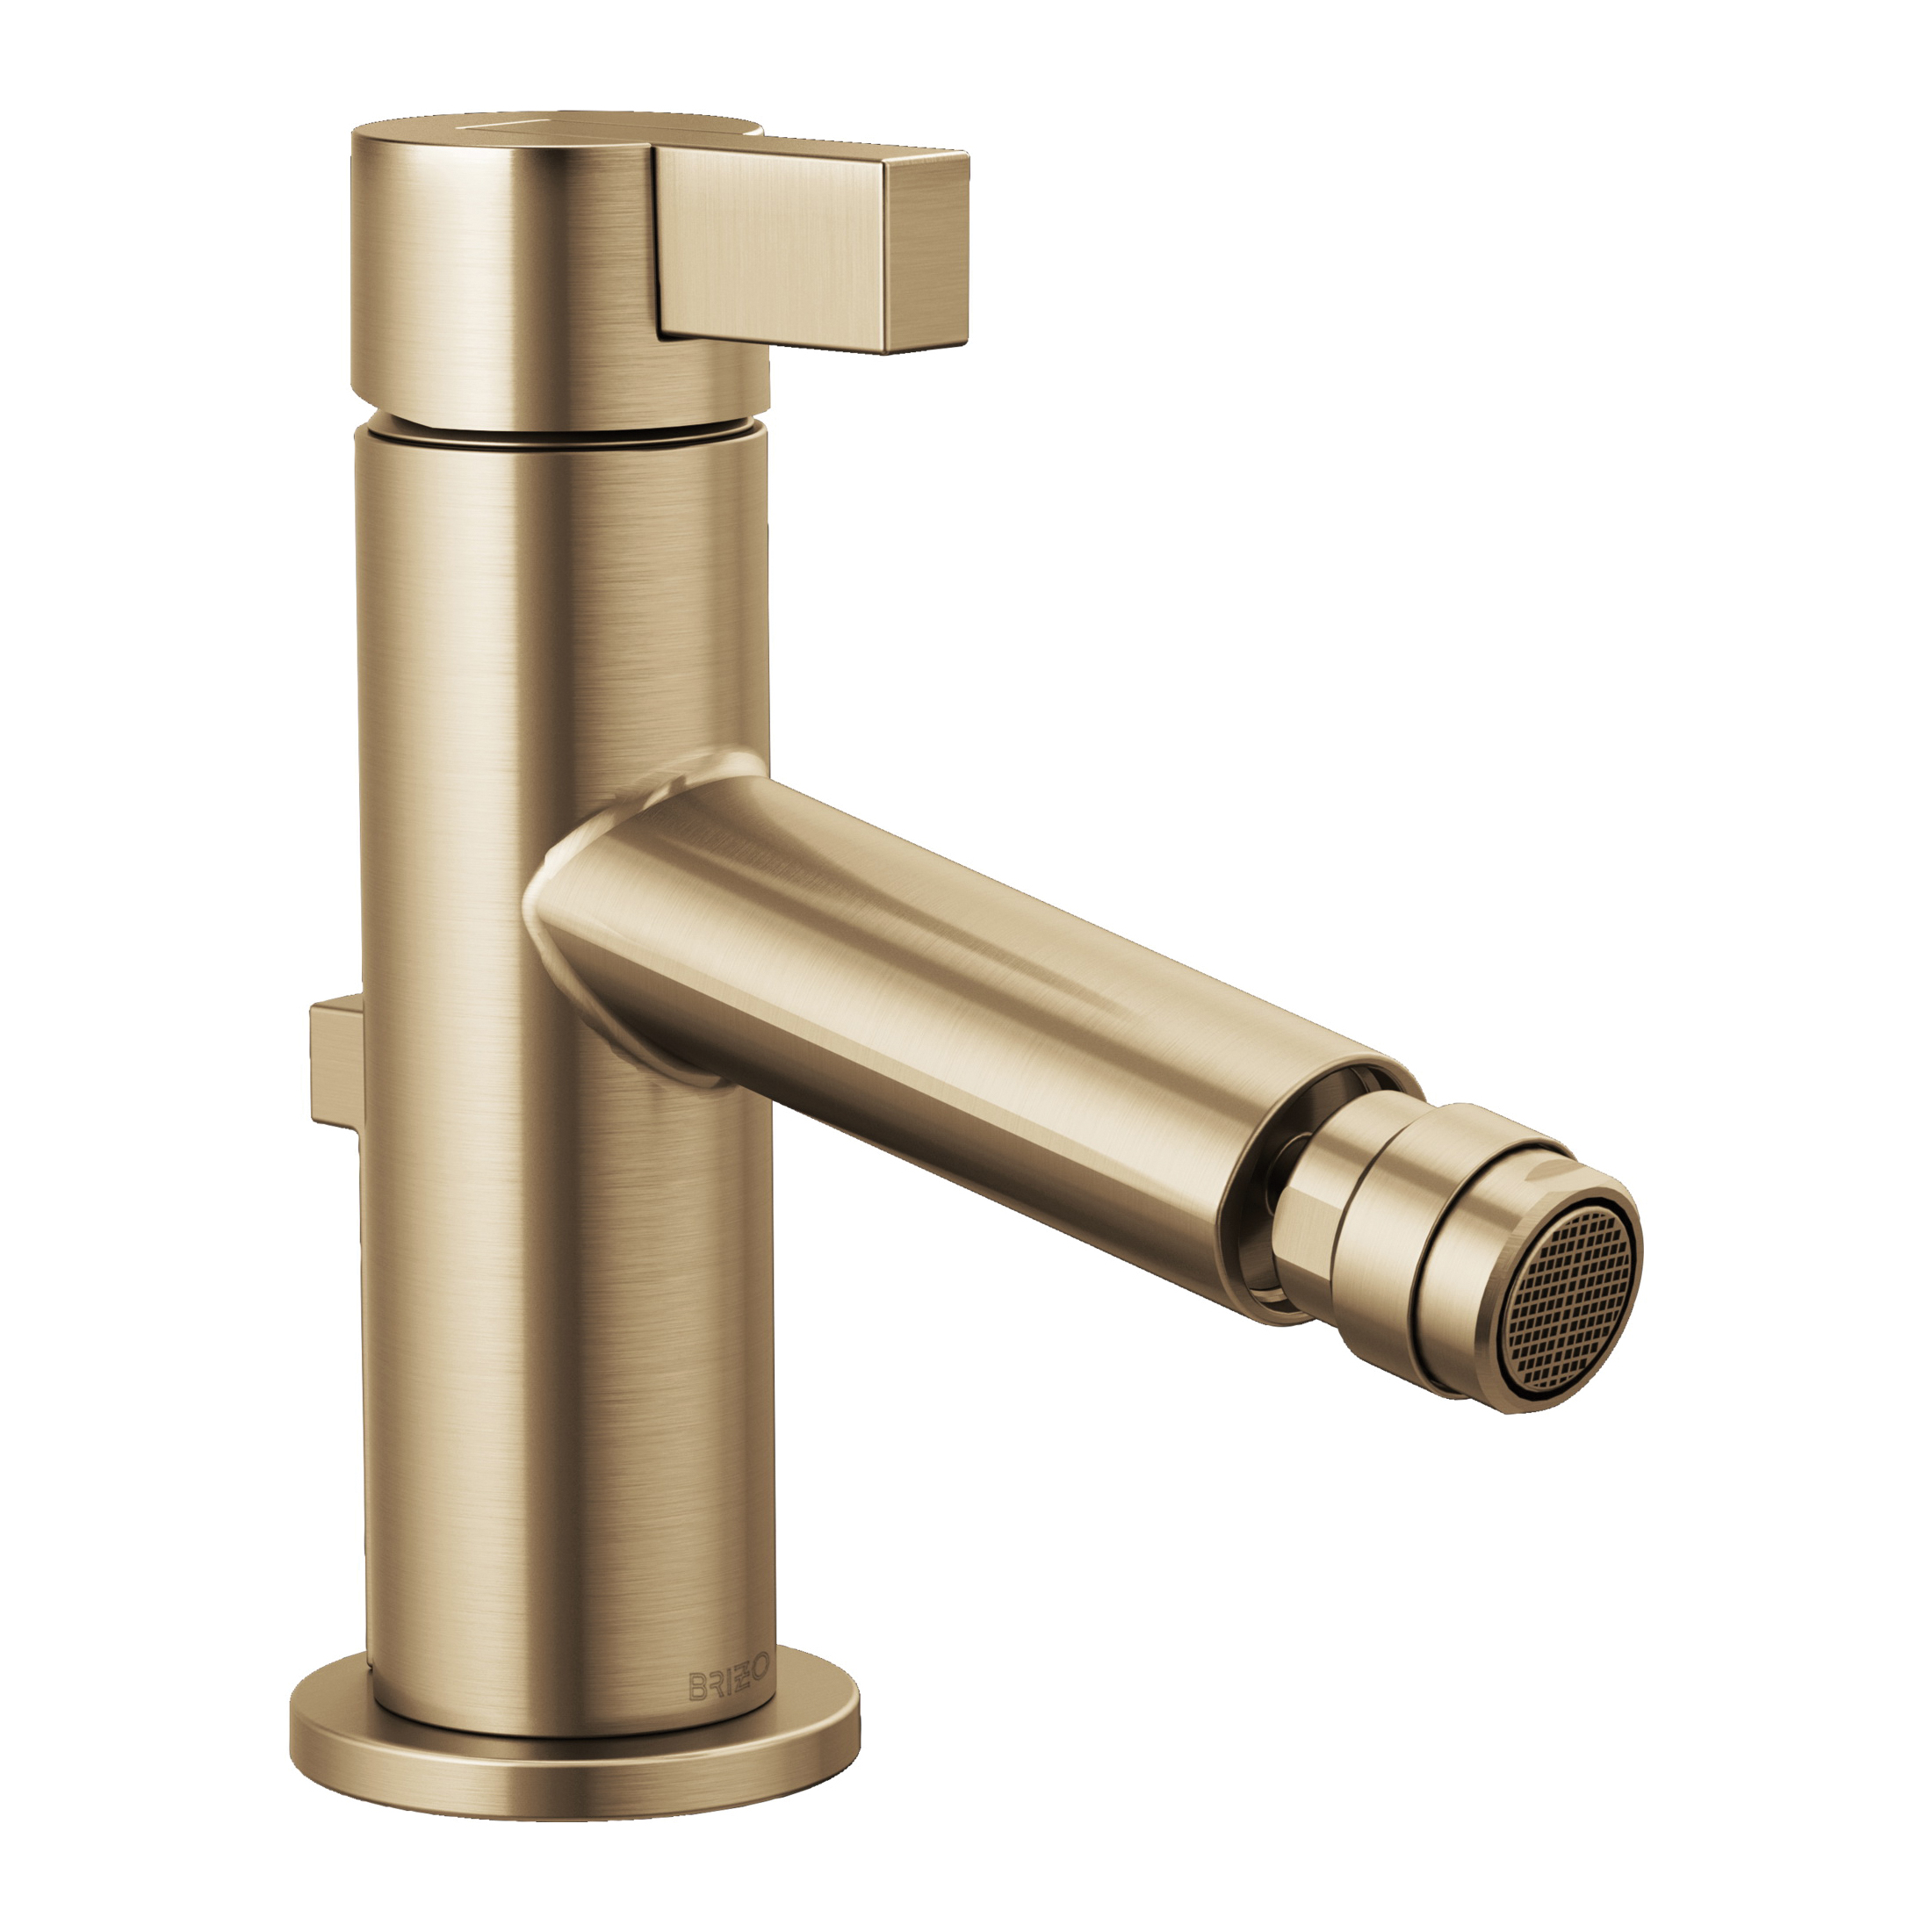 Brizo® 68135-GL Litze™ Bidet Faucet, 2-1/2 in H Spout, 1 Handle, Pop-Up Drain, Luxe Gold, Import, Commercial